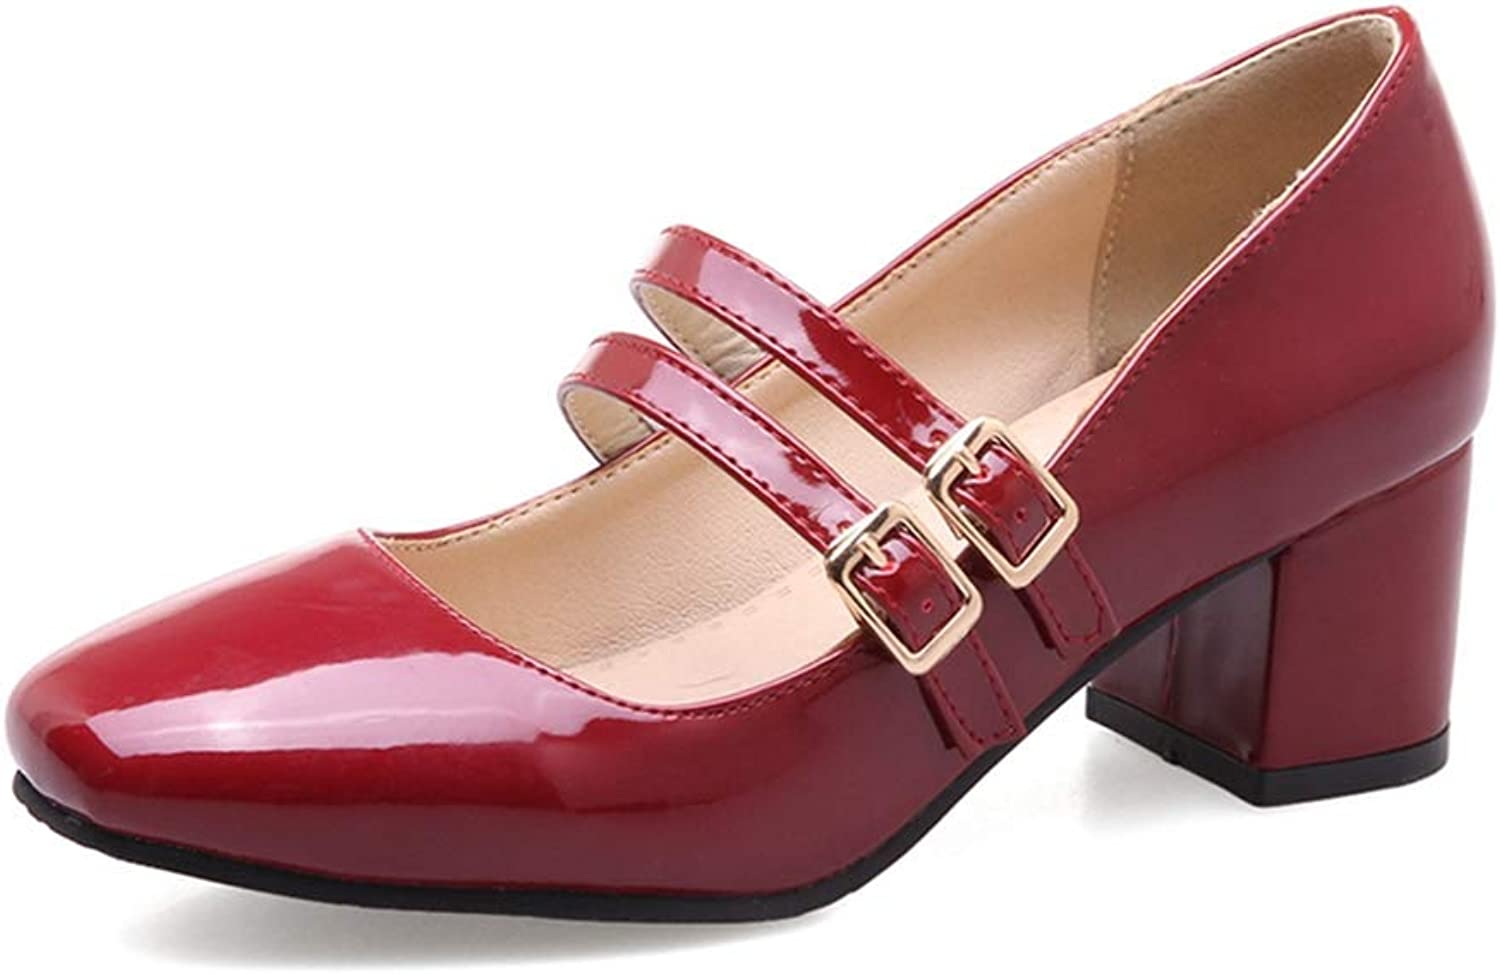 Elsa Wilcox Women Square Toe Buckle Strap Patent Leather Chunky Mid Heel Retro Dress shoes Womens Mary Jane Oxford Pump